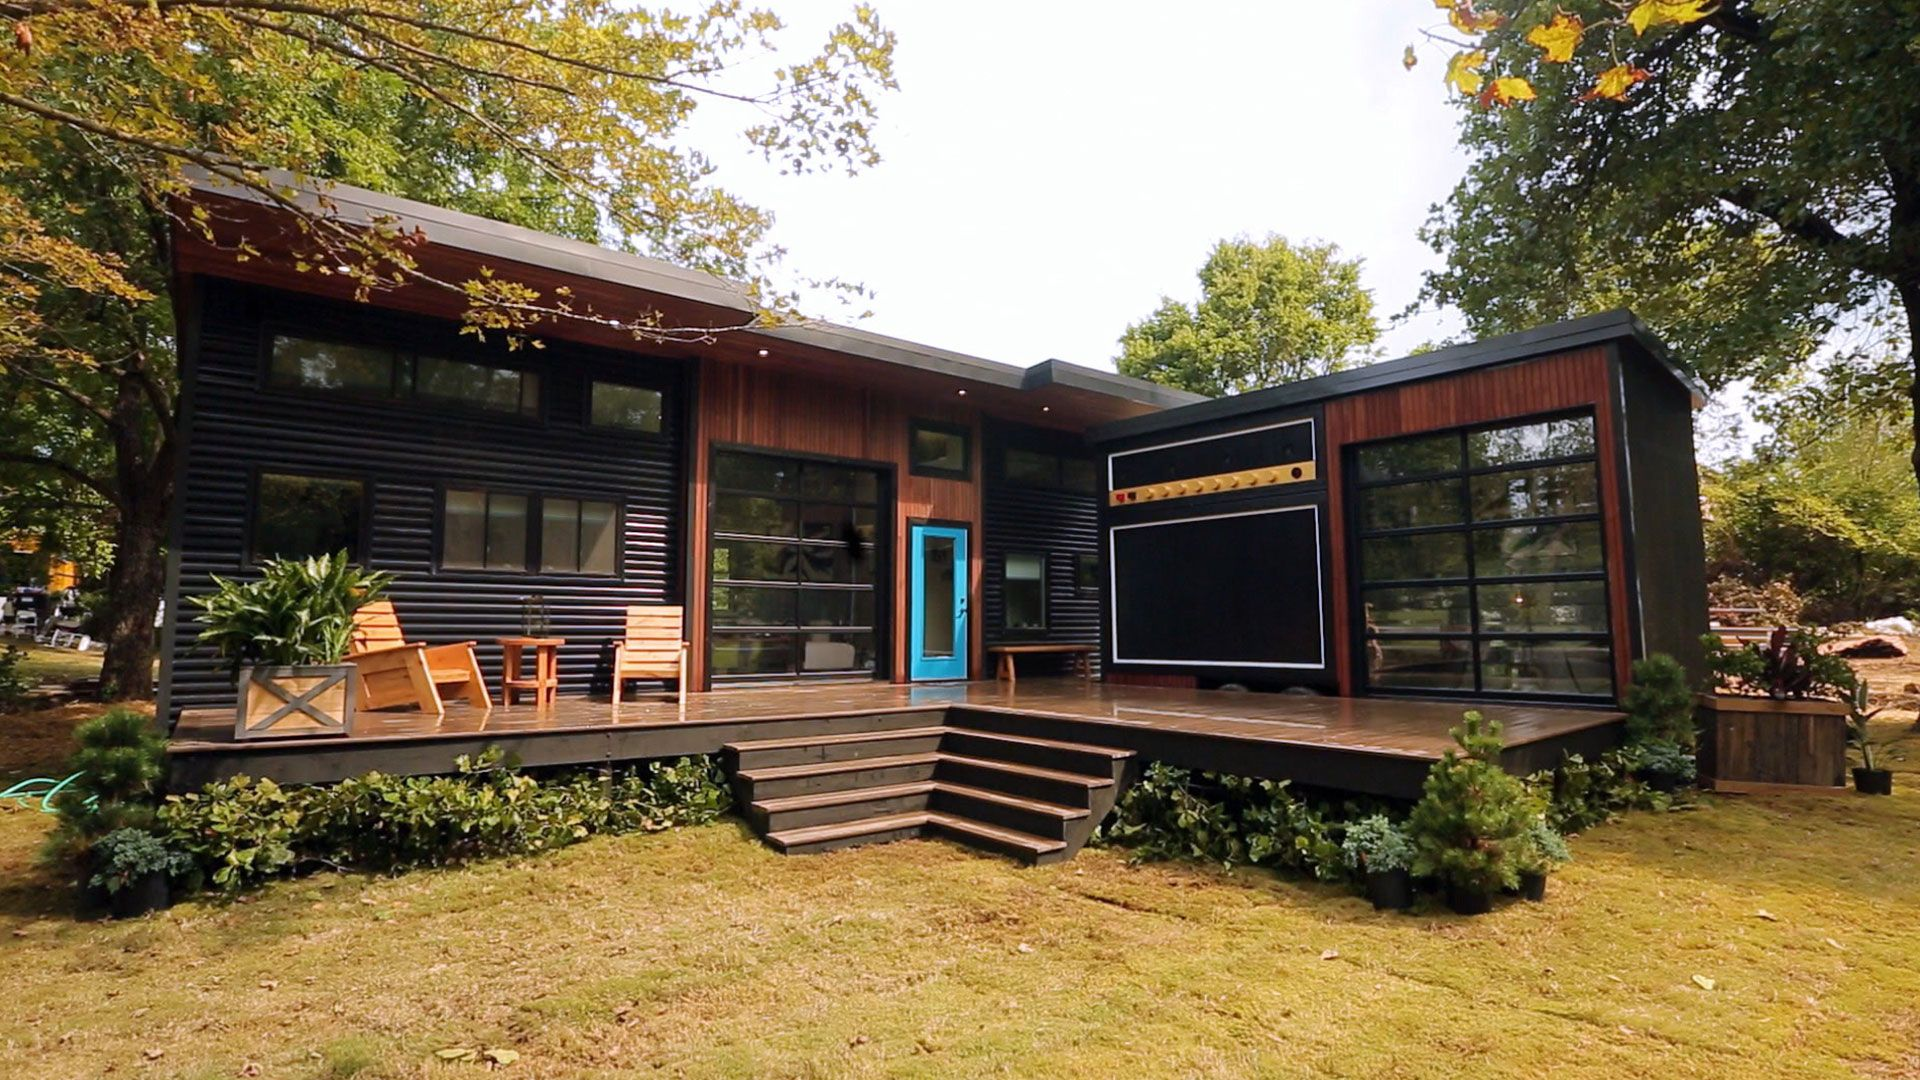 Watch 400 Sq Ft Amplified Tiny House Full Episode Tiny